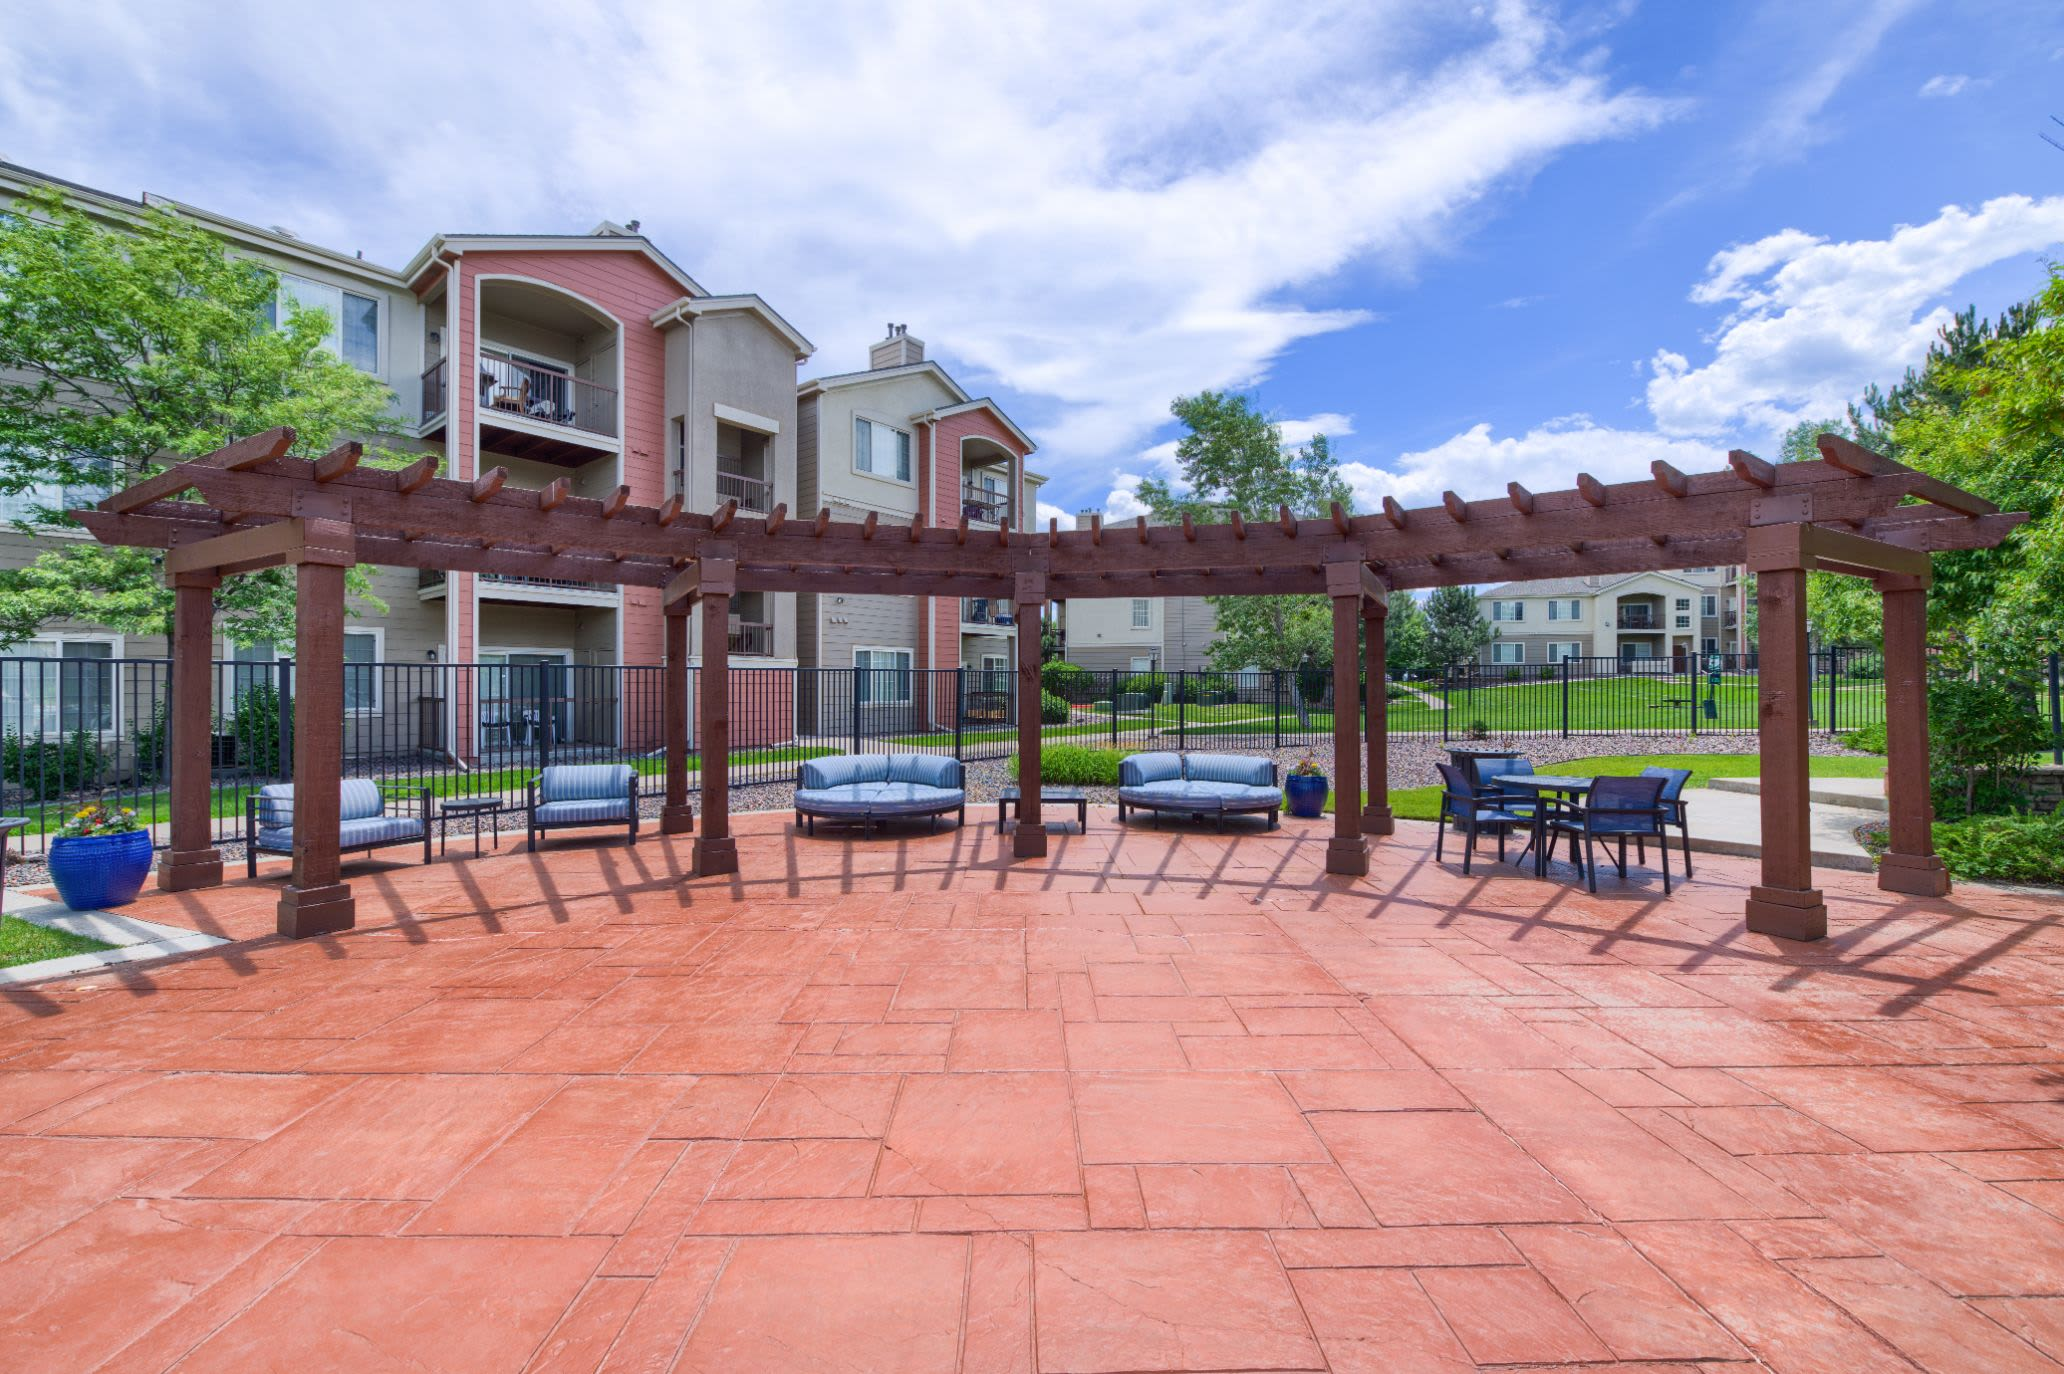 Sun chairs on large patio at Whisper Creek Apartment Homes in Lakewood, Colorado